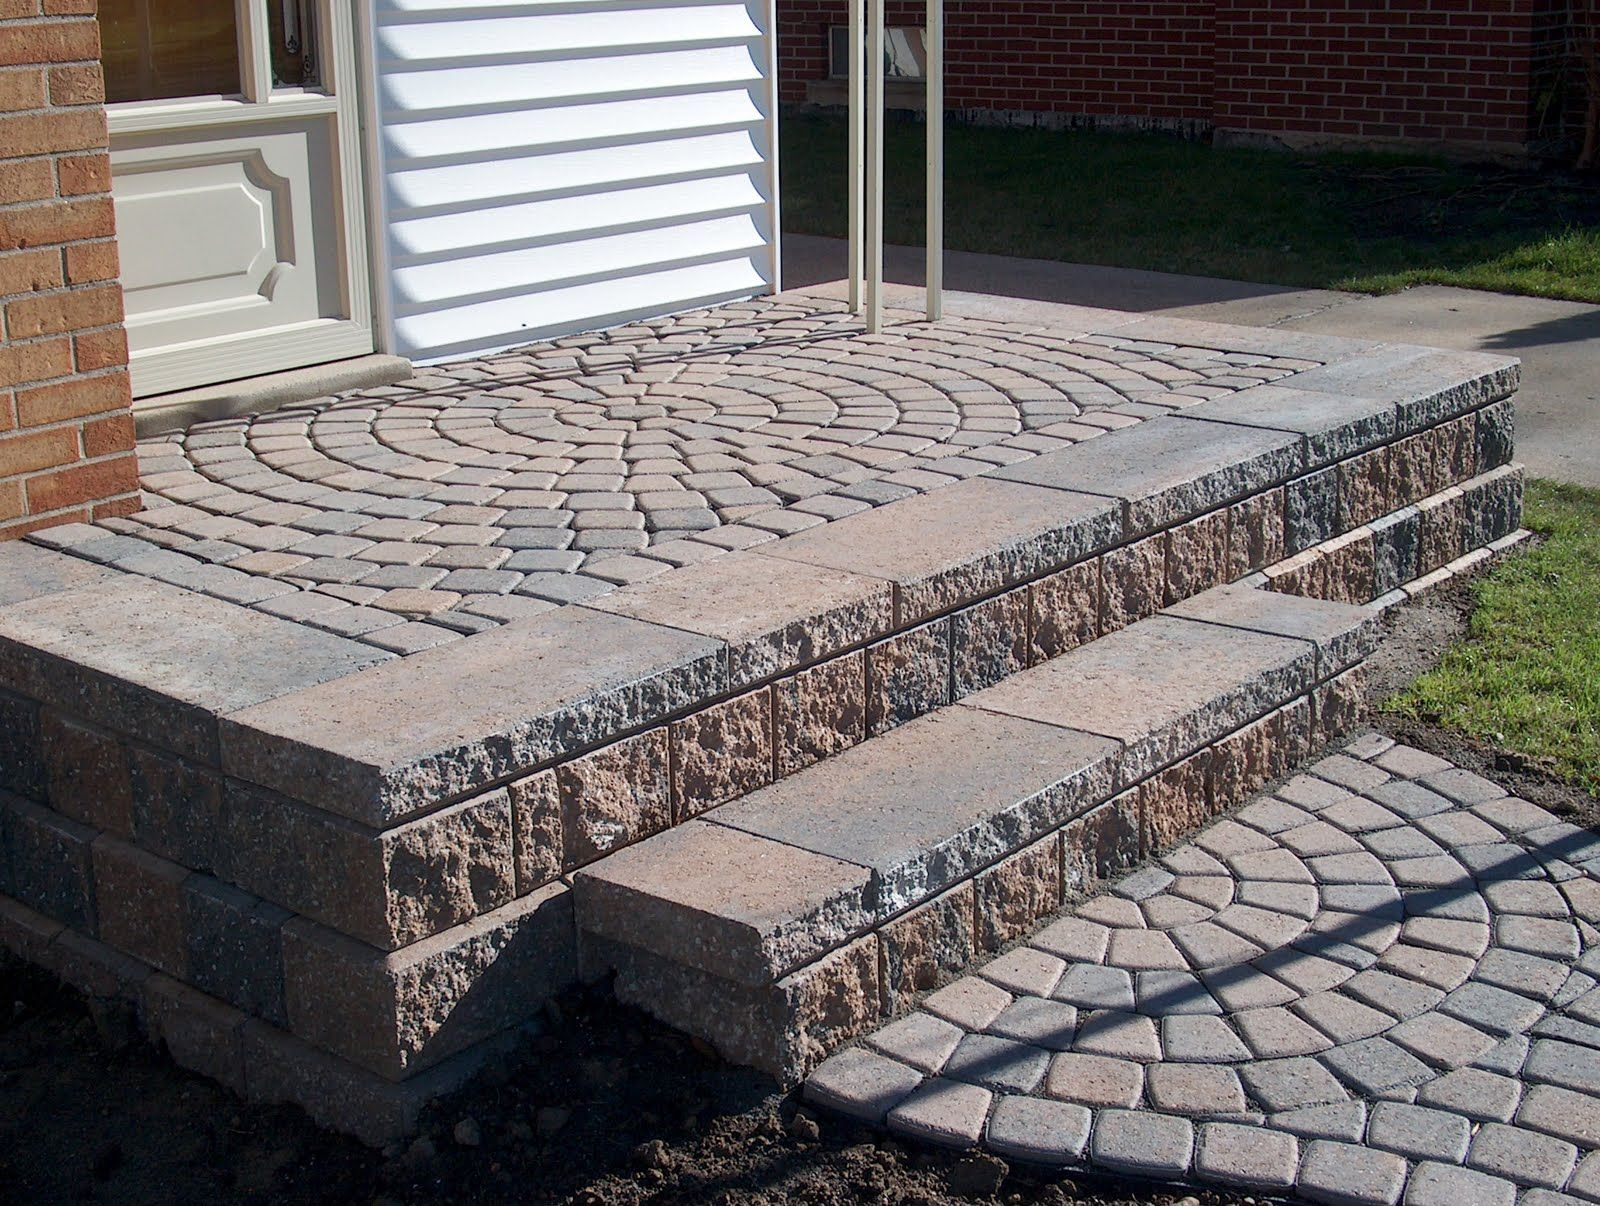 Brick Pavers Canton Plymouth Northville Patios Repair Cleaning Sealing Patio Building A Fence Patio Repair